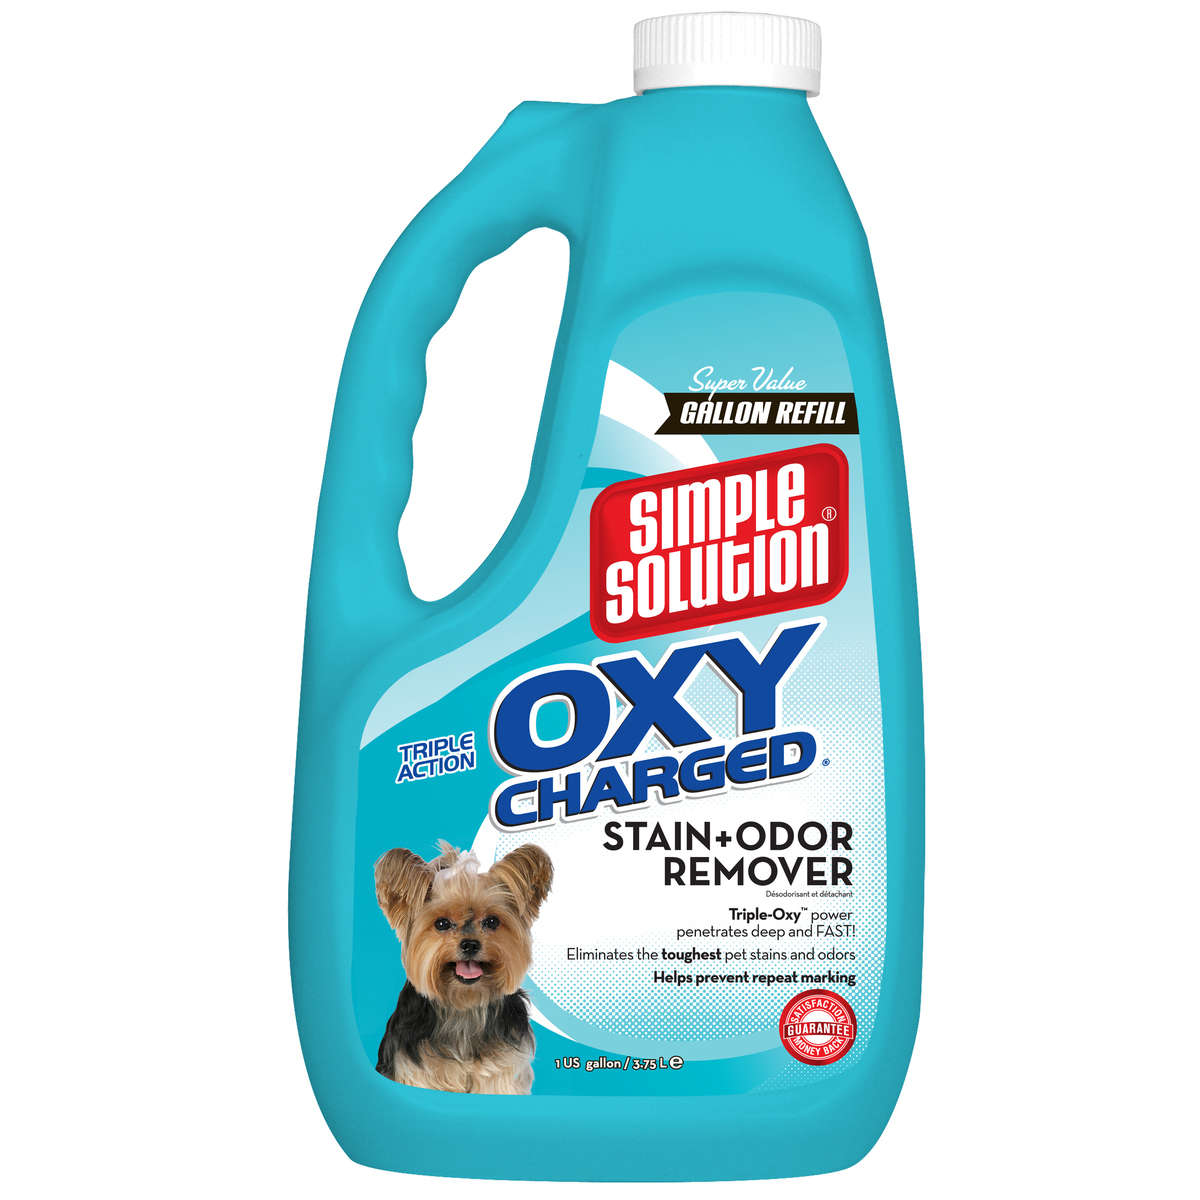 """Simple Solution Oxy Charged Stain and Odor Remover 1 Gallon 5.42"""" x 7.09"""" x 11.88"""""""